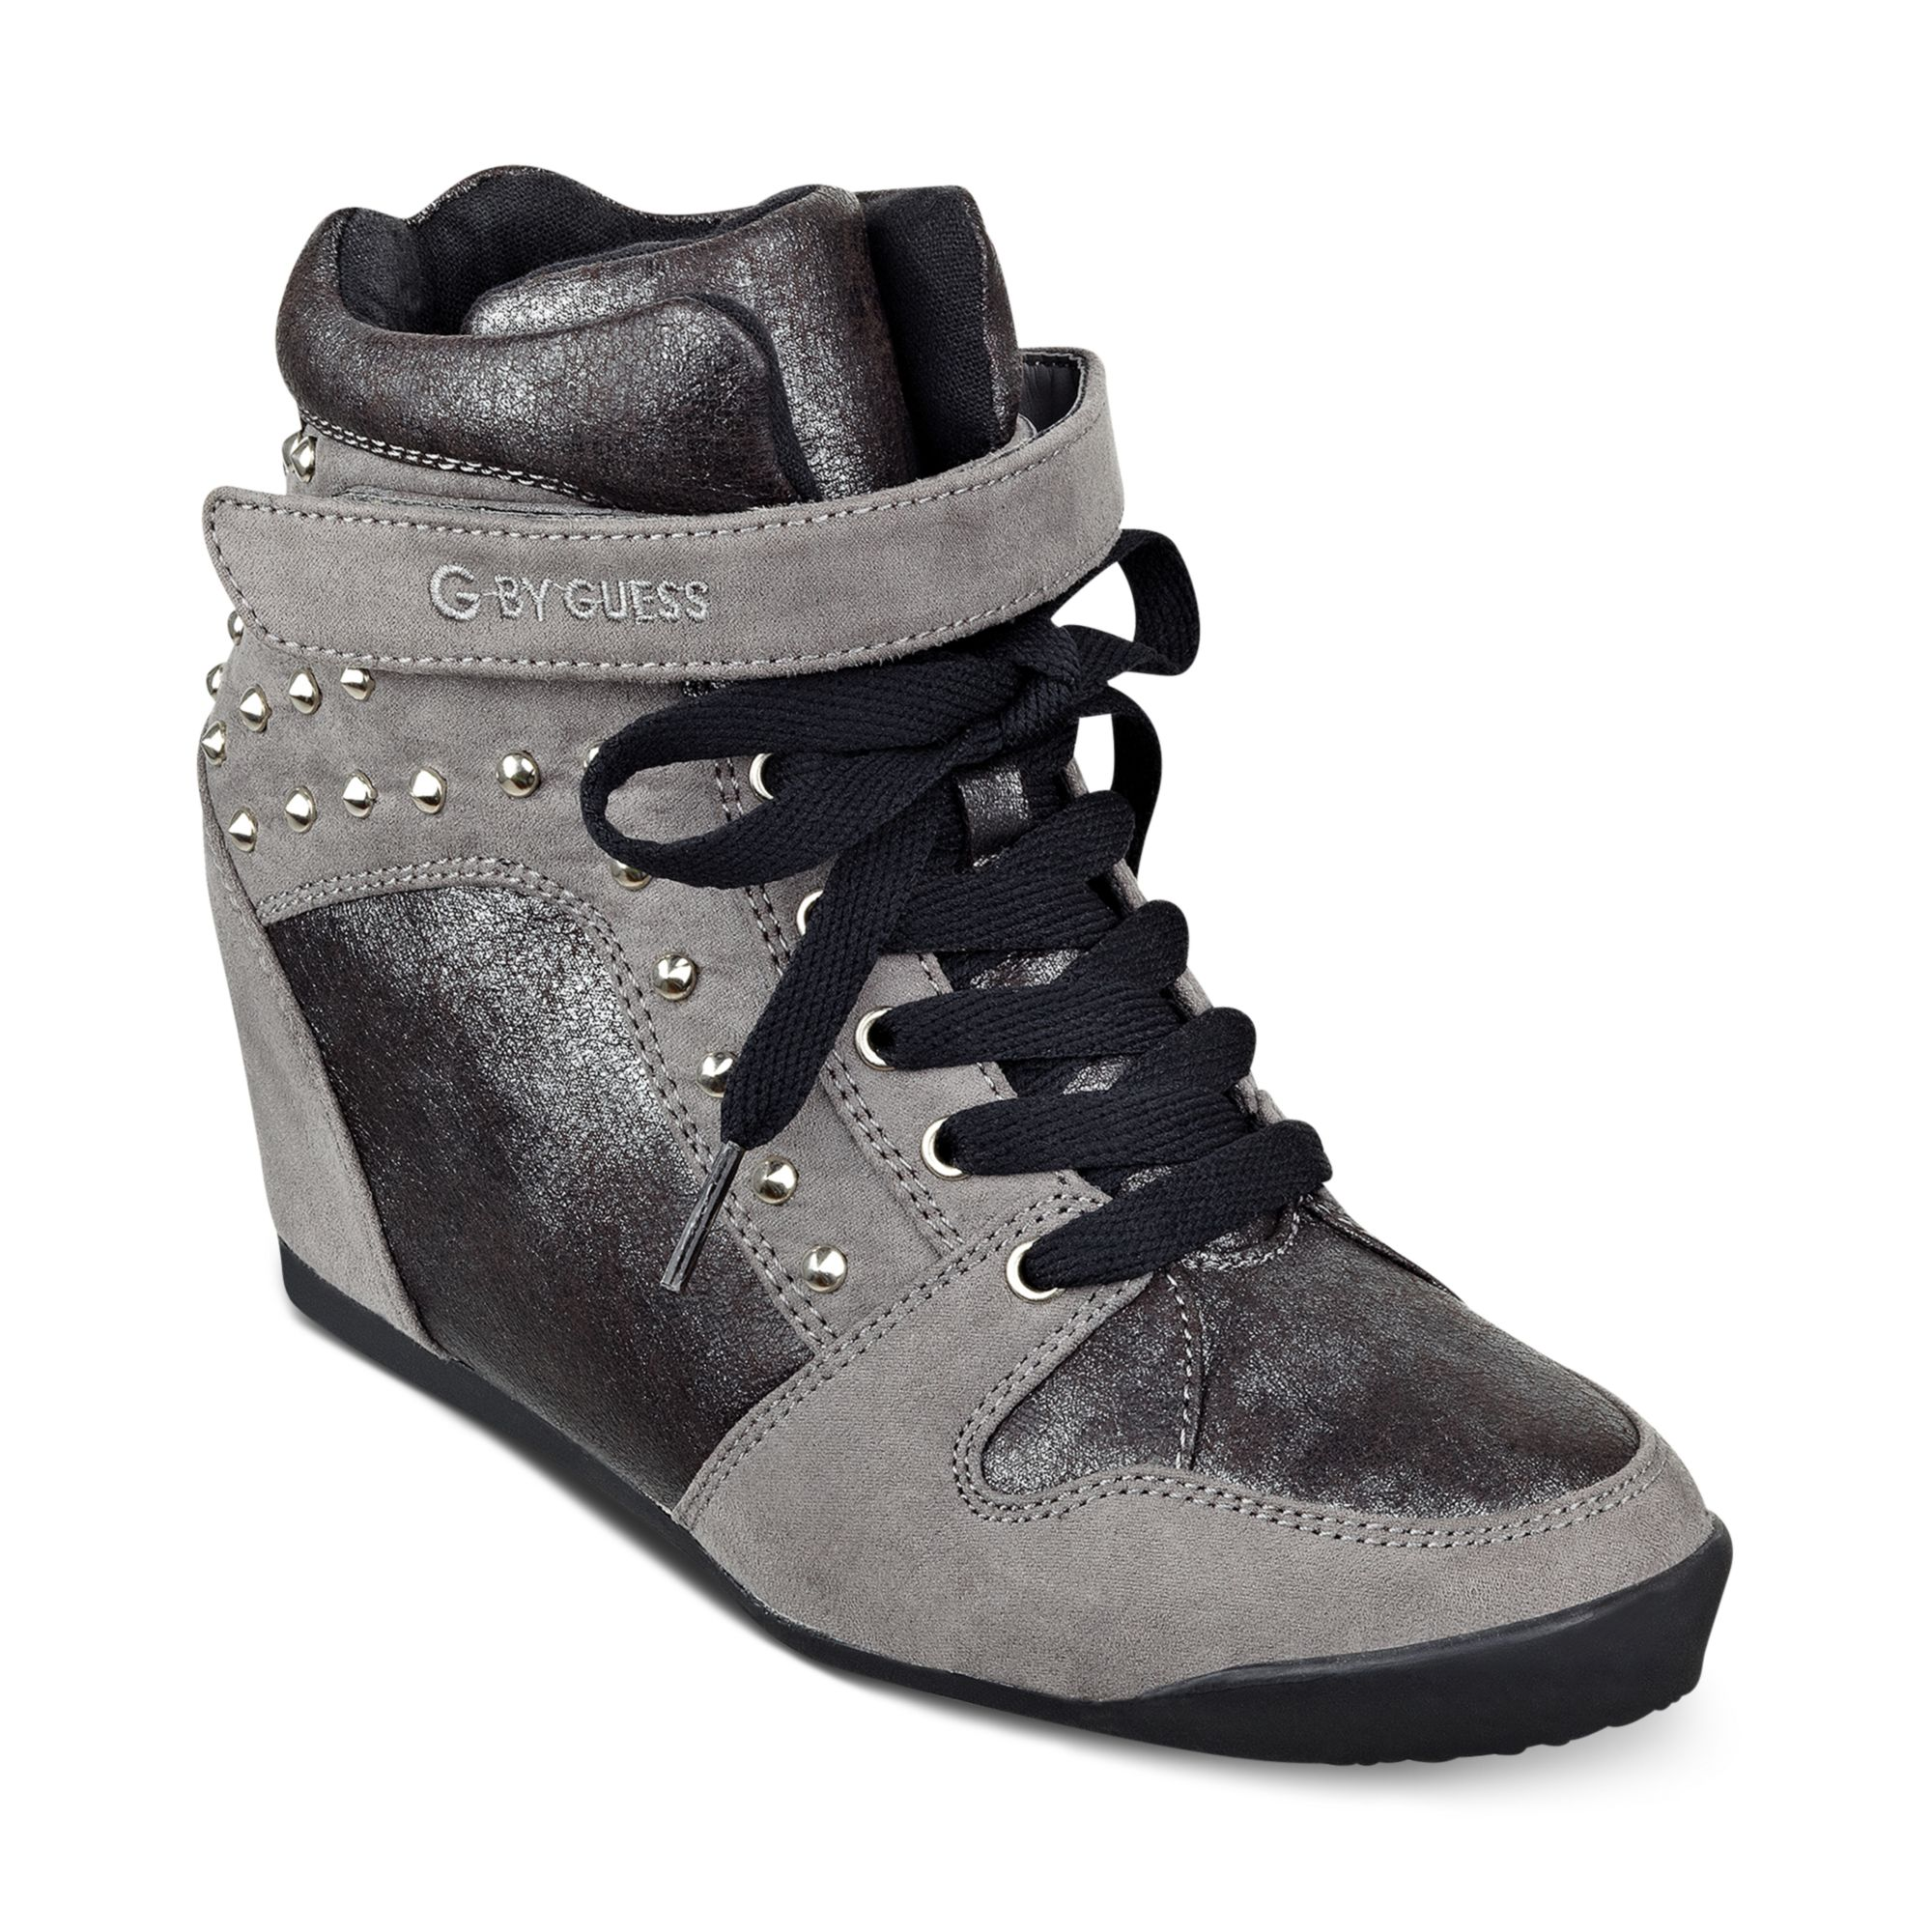 Lyst - G By Guess G By Guess Shoes Raurie Glitter Wedge ...